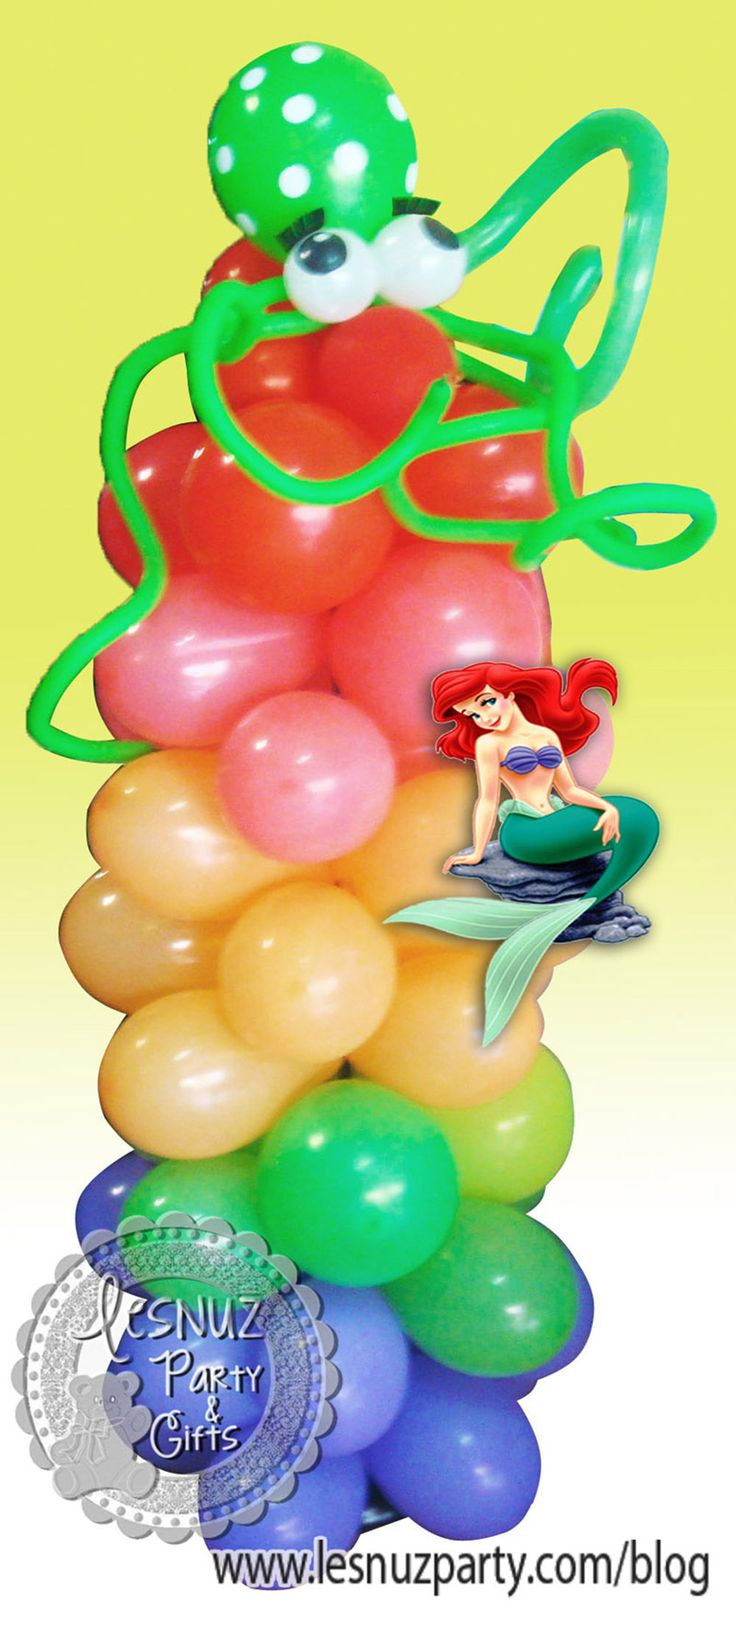 Torre de globos multicolor con pulpo - multicolored balloons tower